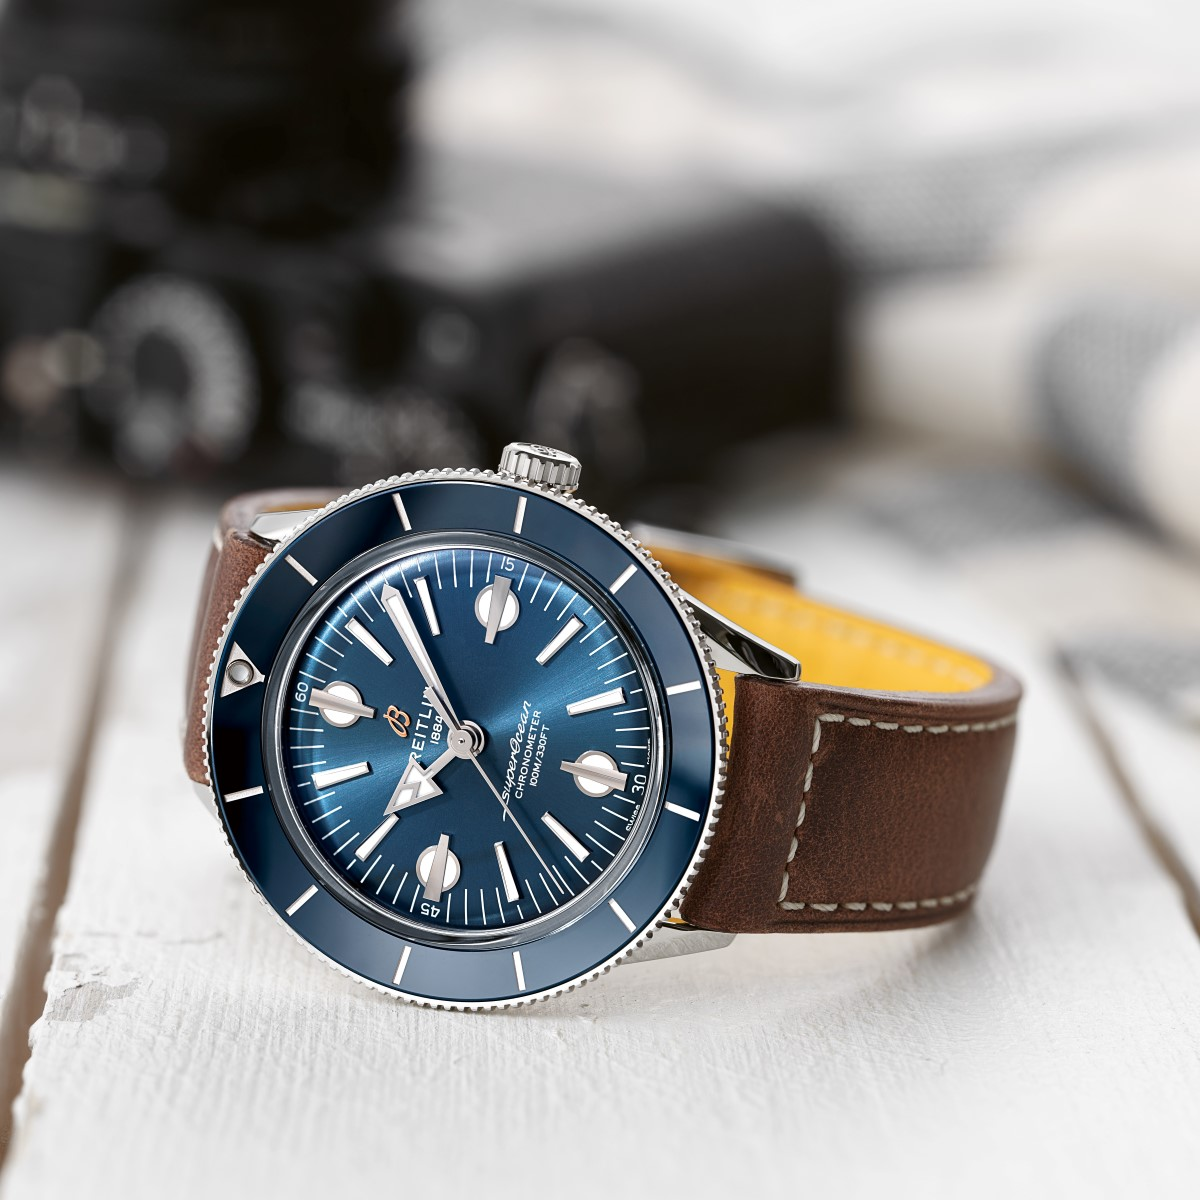 Breitling Superocean Heritage 57 Collection Capsule